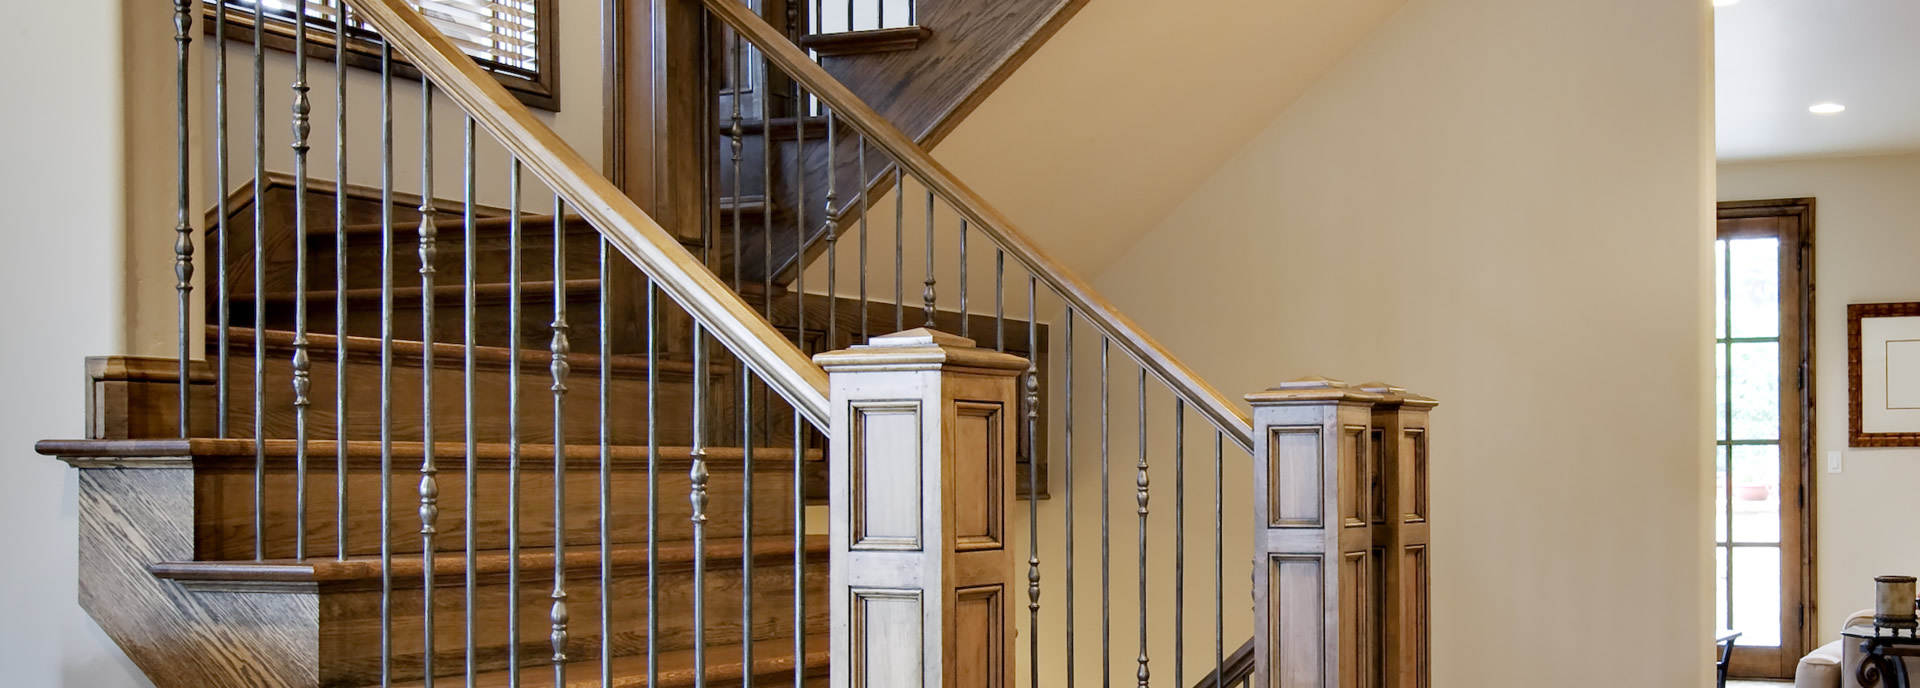 Three Stunning Flared Staircase Designs Alpharetta, GA